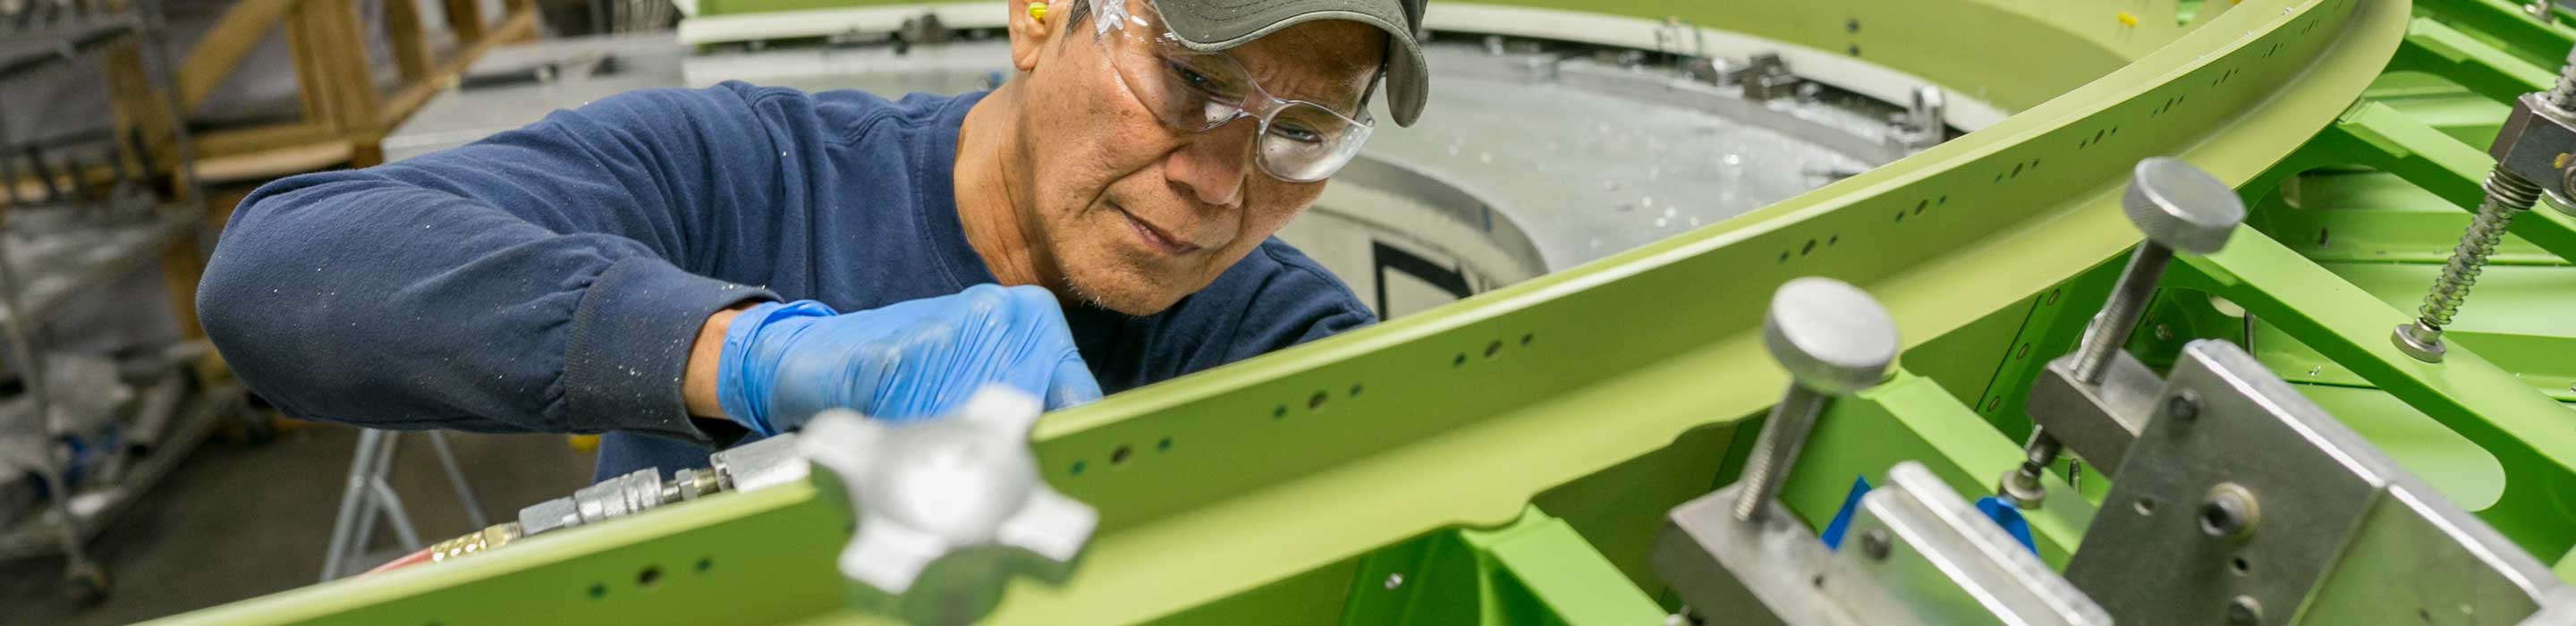 Man working on interior of bulkhead assembly